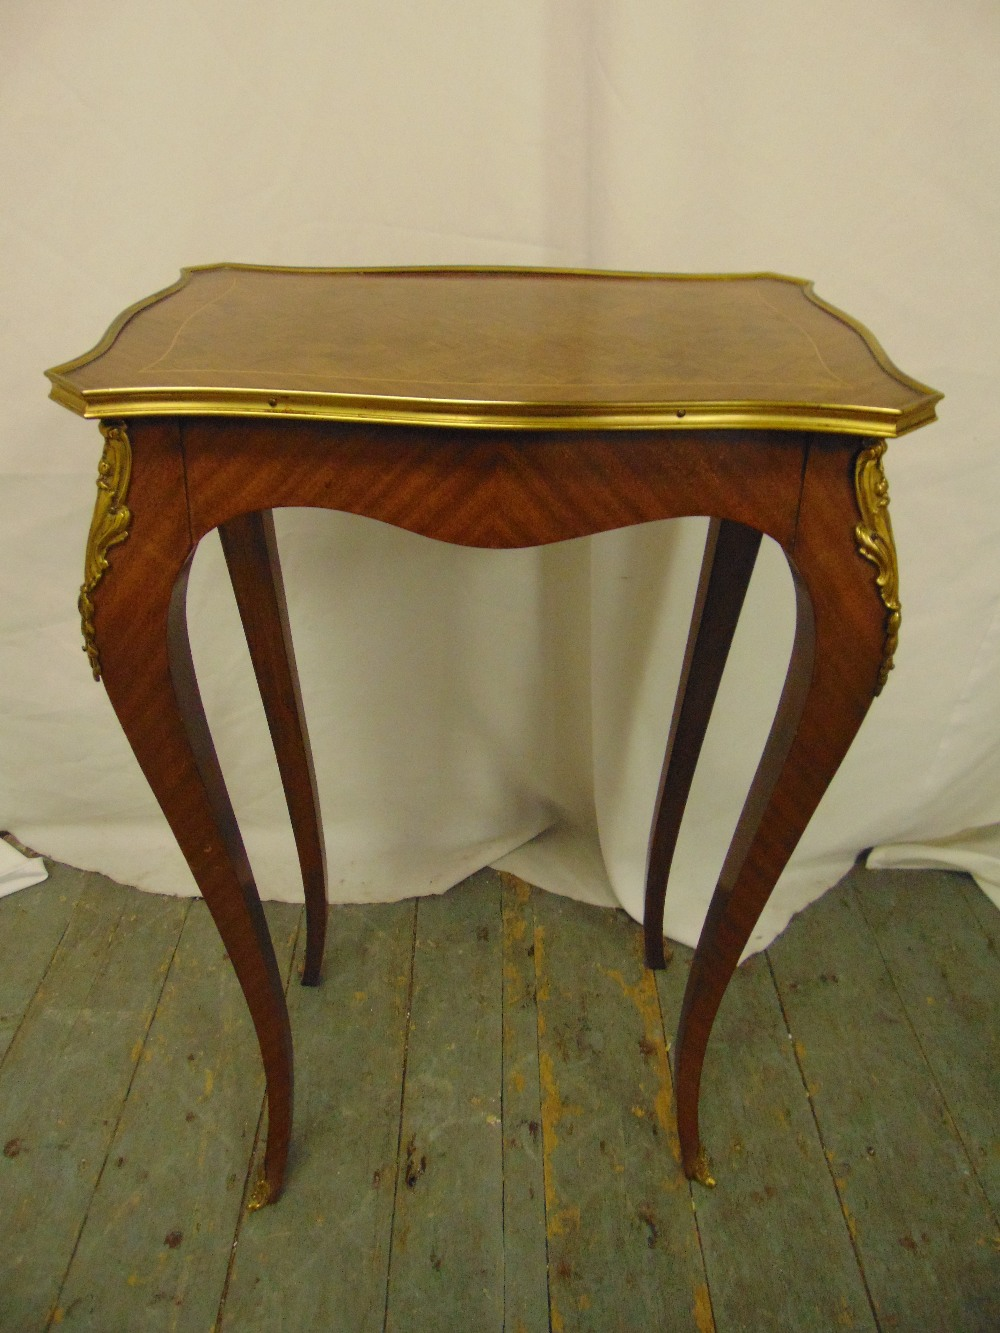 Lot 9 - A rectangular Kingswood side table with applied gilded metal mounts on four cabriole legs